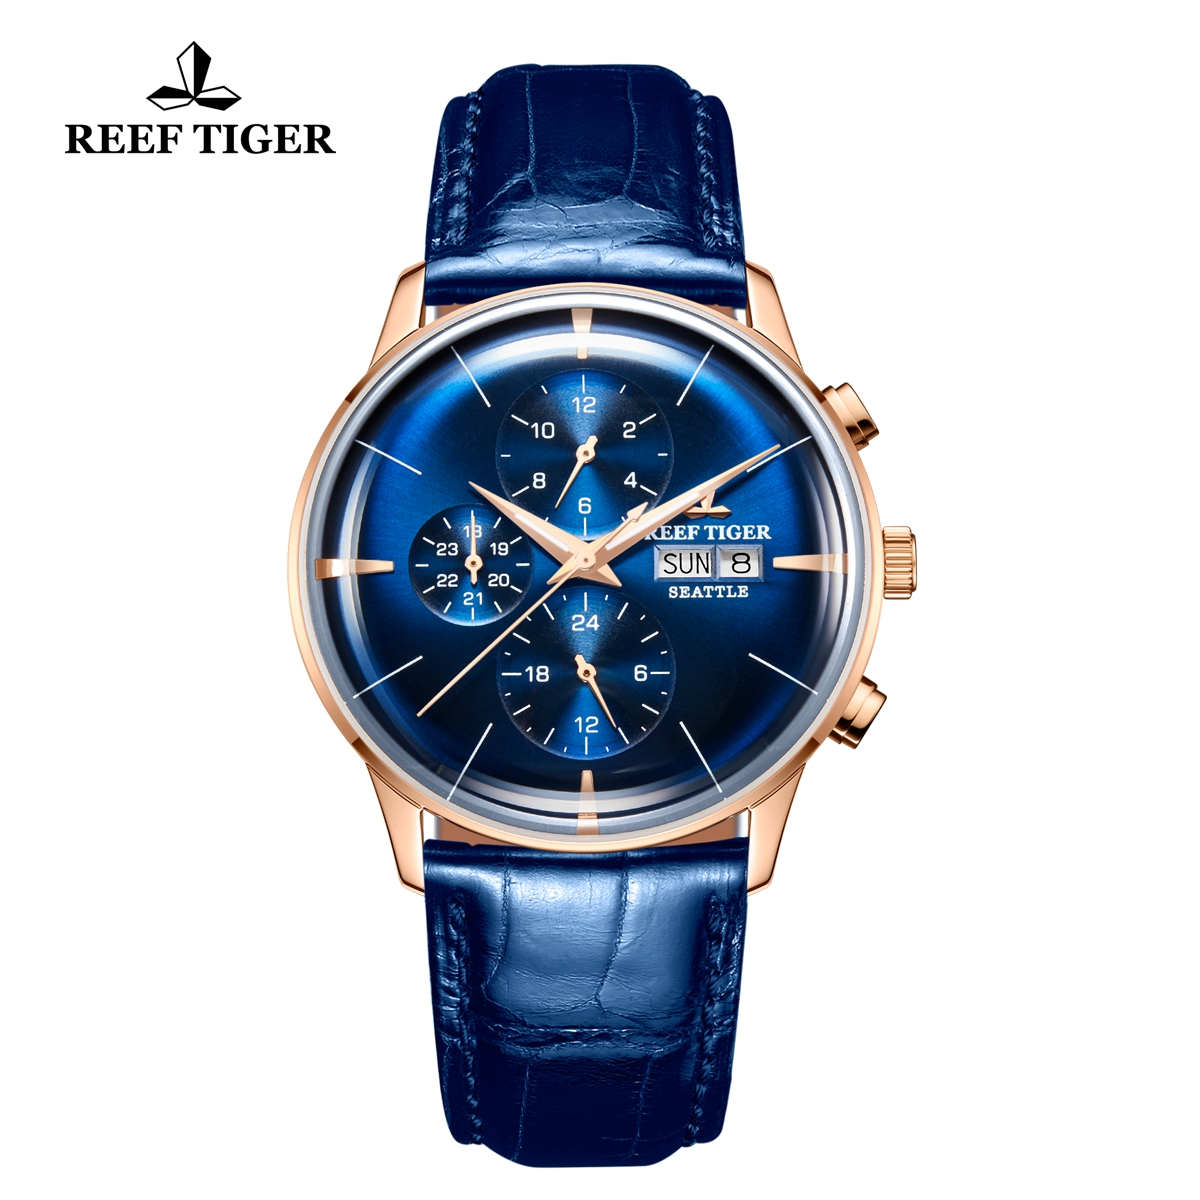 Reef Tiger Seattle Chief Fashion Rose Gold Blue Dial Leather Strap Automatic Watch RGA1699-PLL